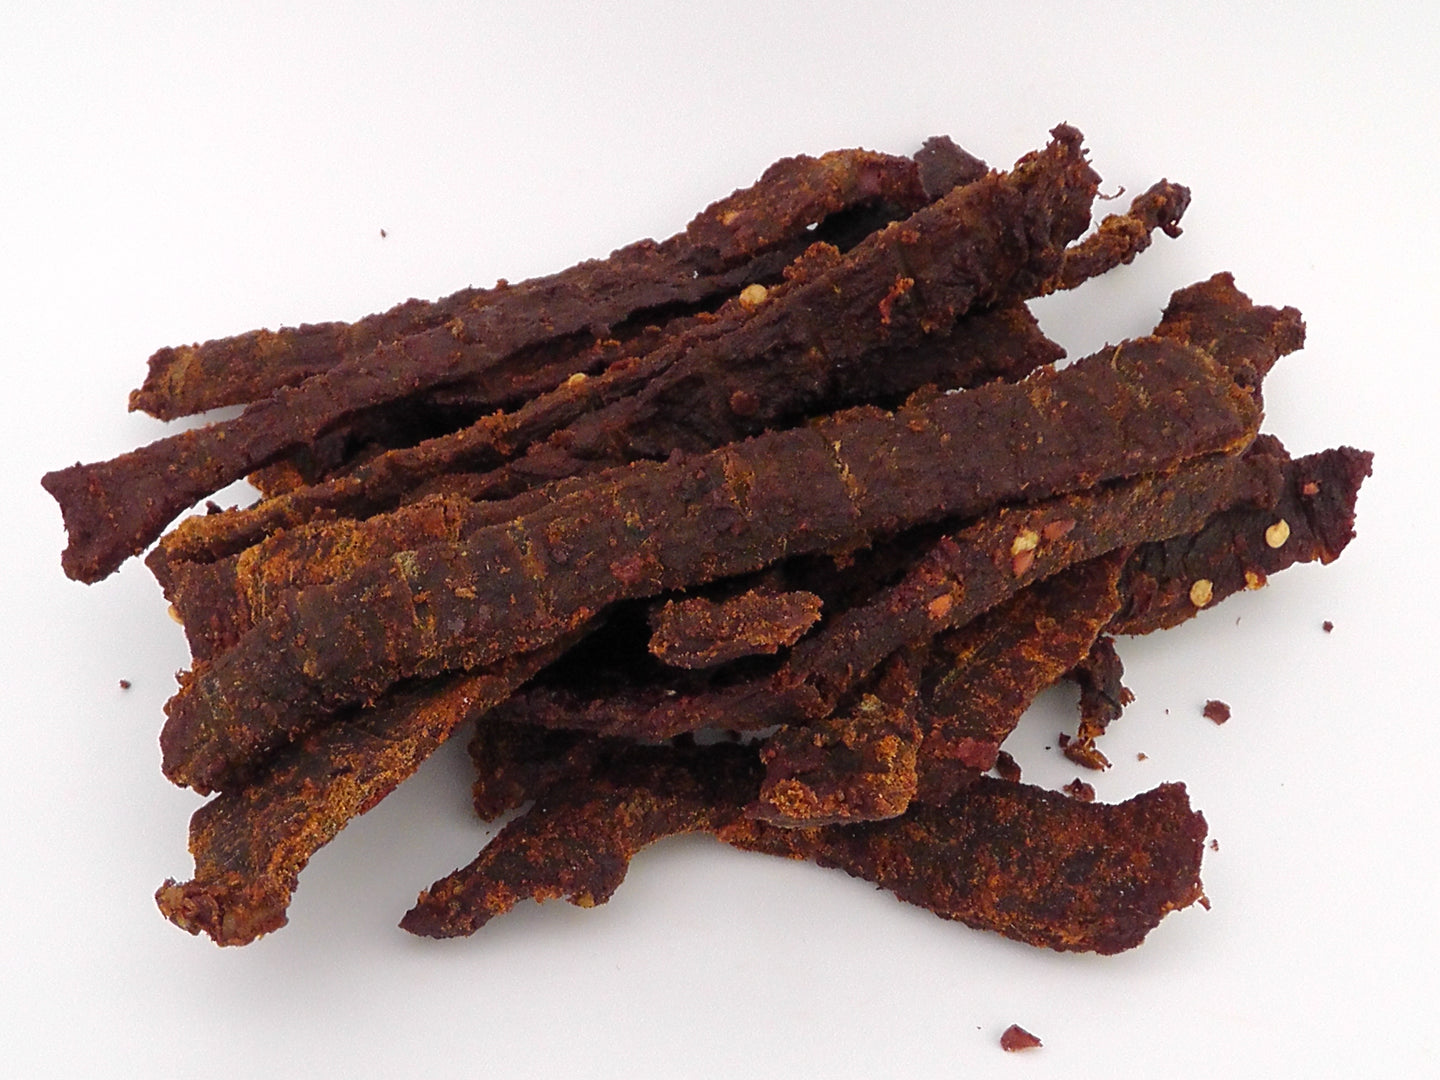 Spicy Beef Jerky Bulk buy 200g - Scottish Beef Jerky - Smoky Barrel Jerky